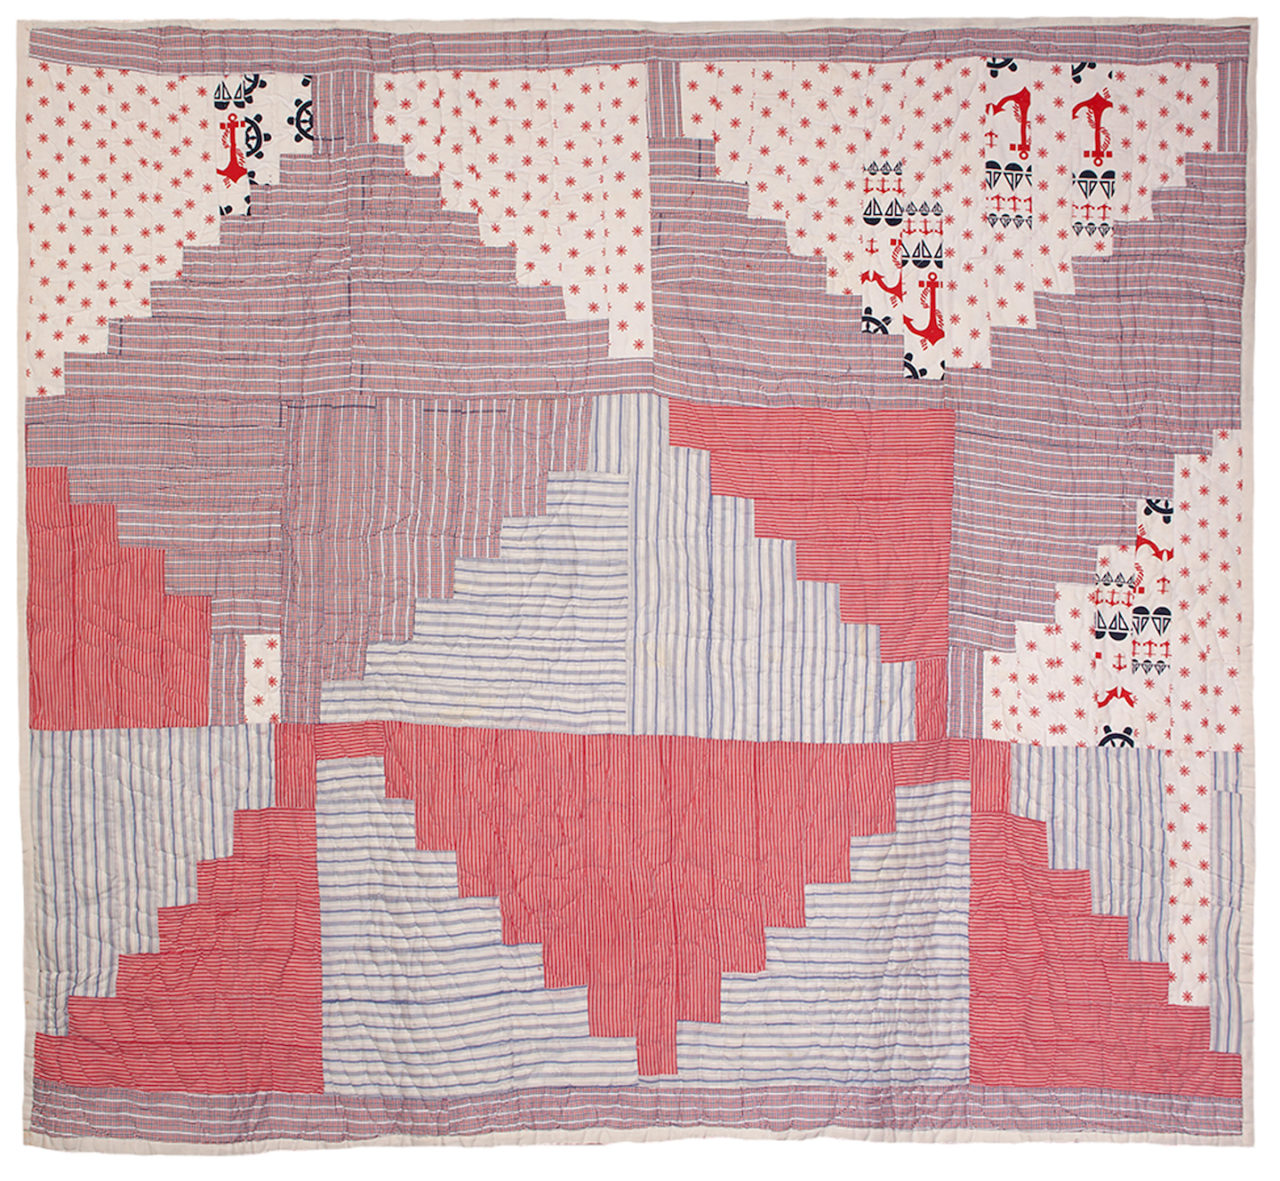 Gee's Bend Quiltmakers | Aestean Pettway Young